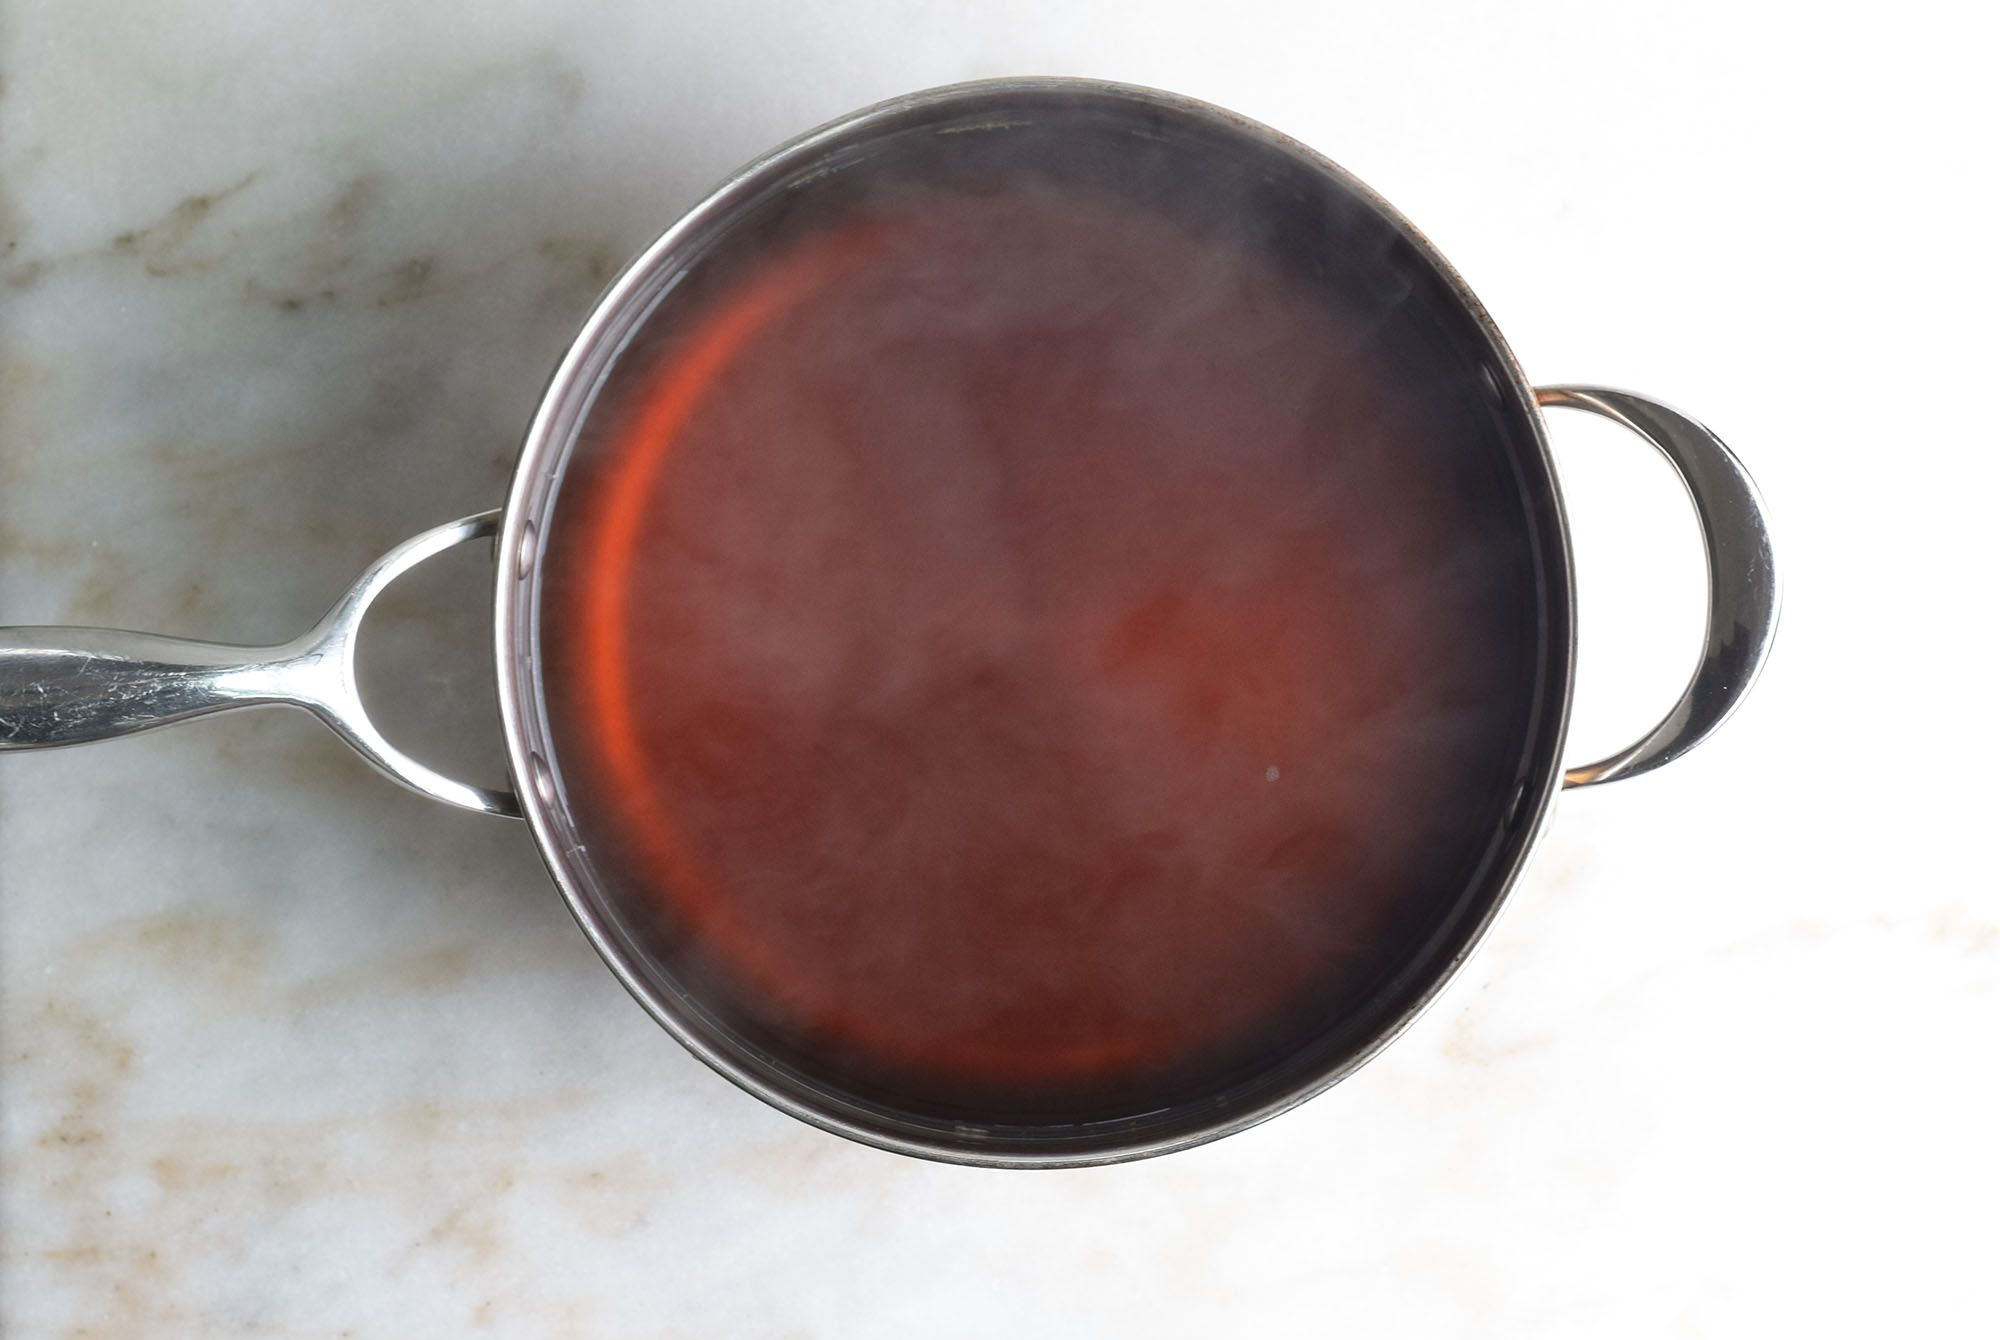 add nstant espresso and remaining sugar into boiling water and mix